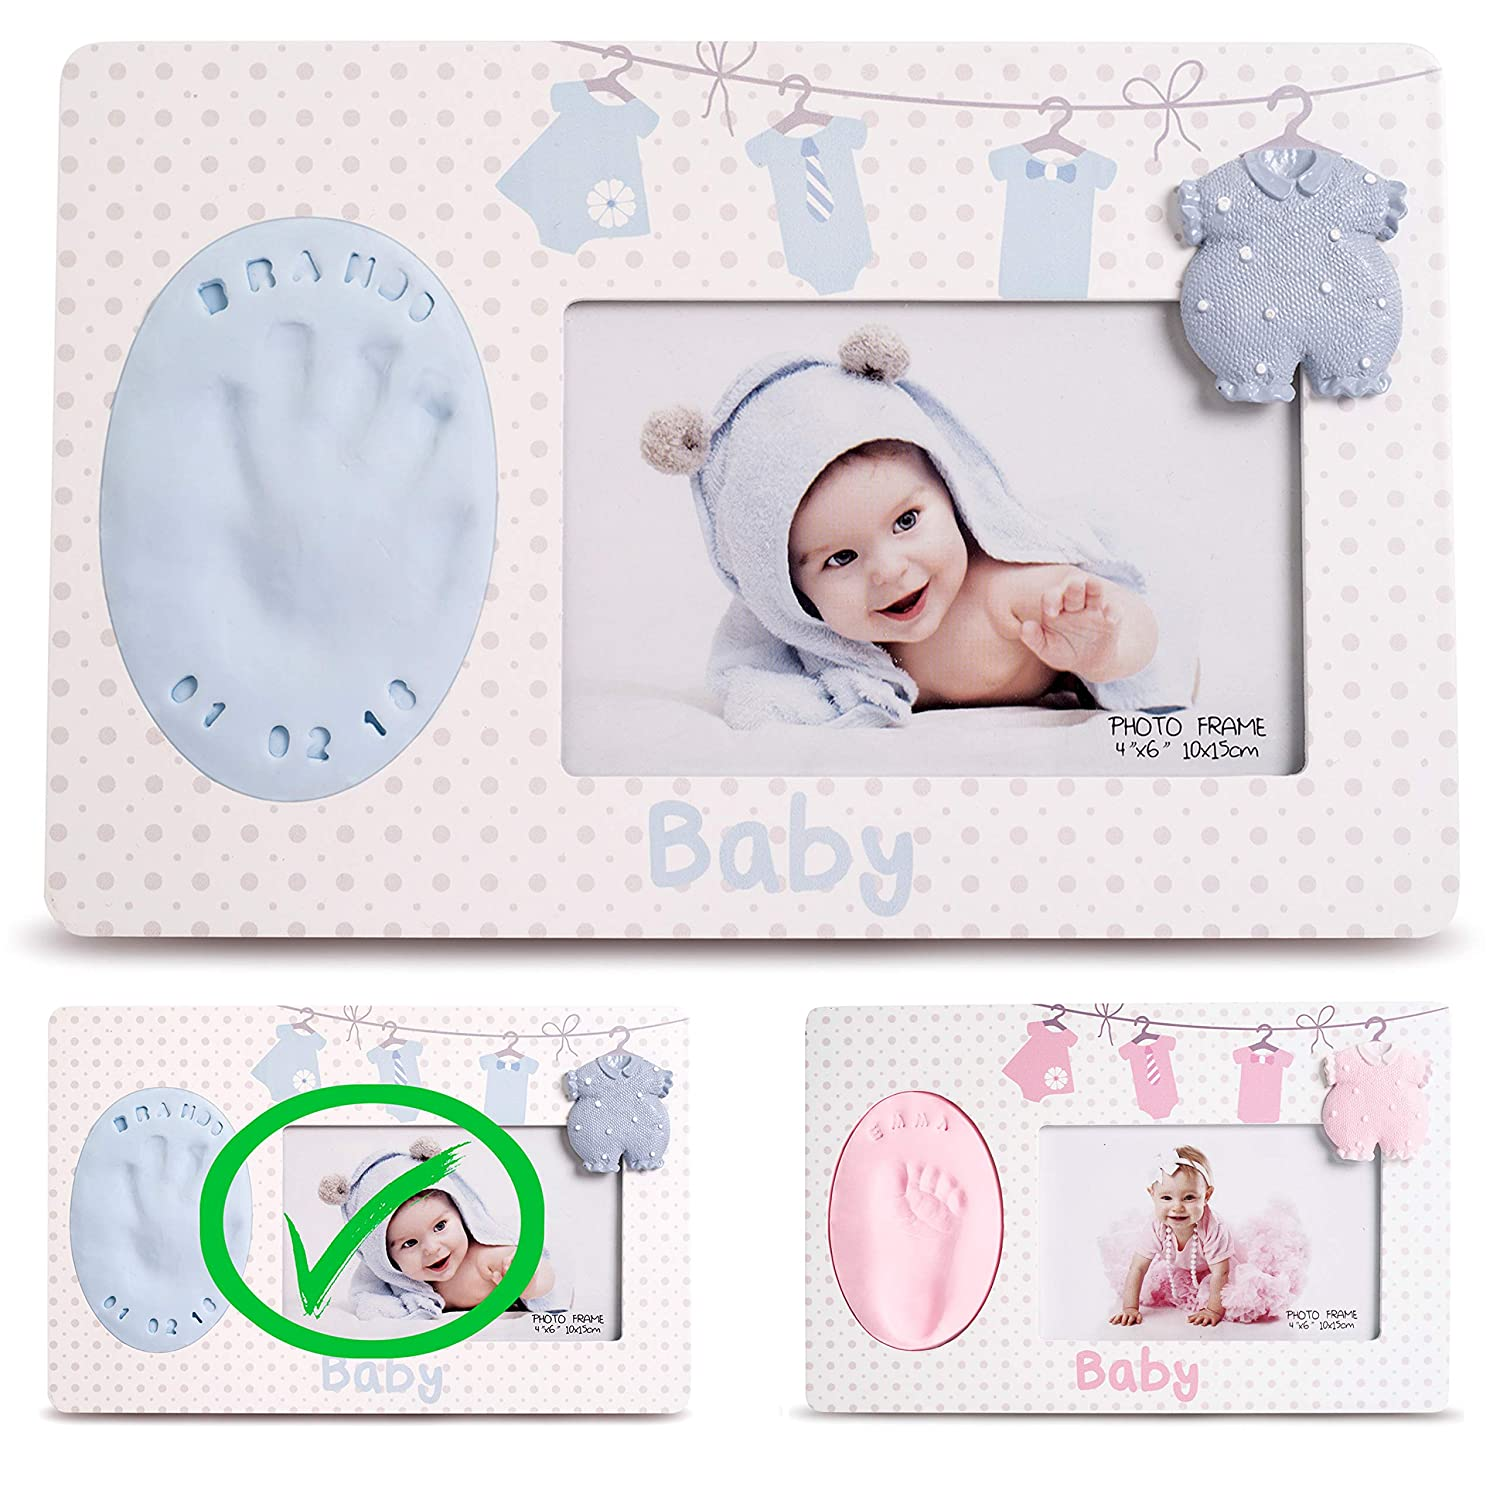 Baby Handprint Footprint Photo Frame Kit – Premium Casting No Mold Clay – Boy Girls Baby Shower Gifts – Newborn Keepsake Personalized Picture Frame – Wall Table – Free Stamp Set- Blue